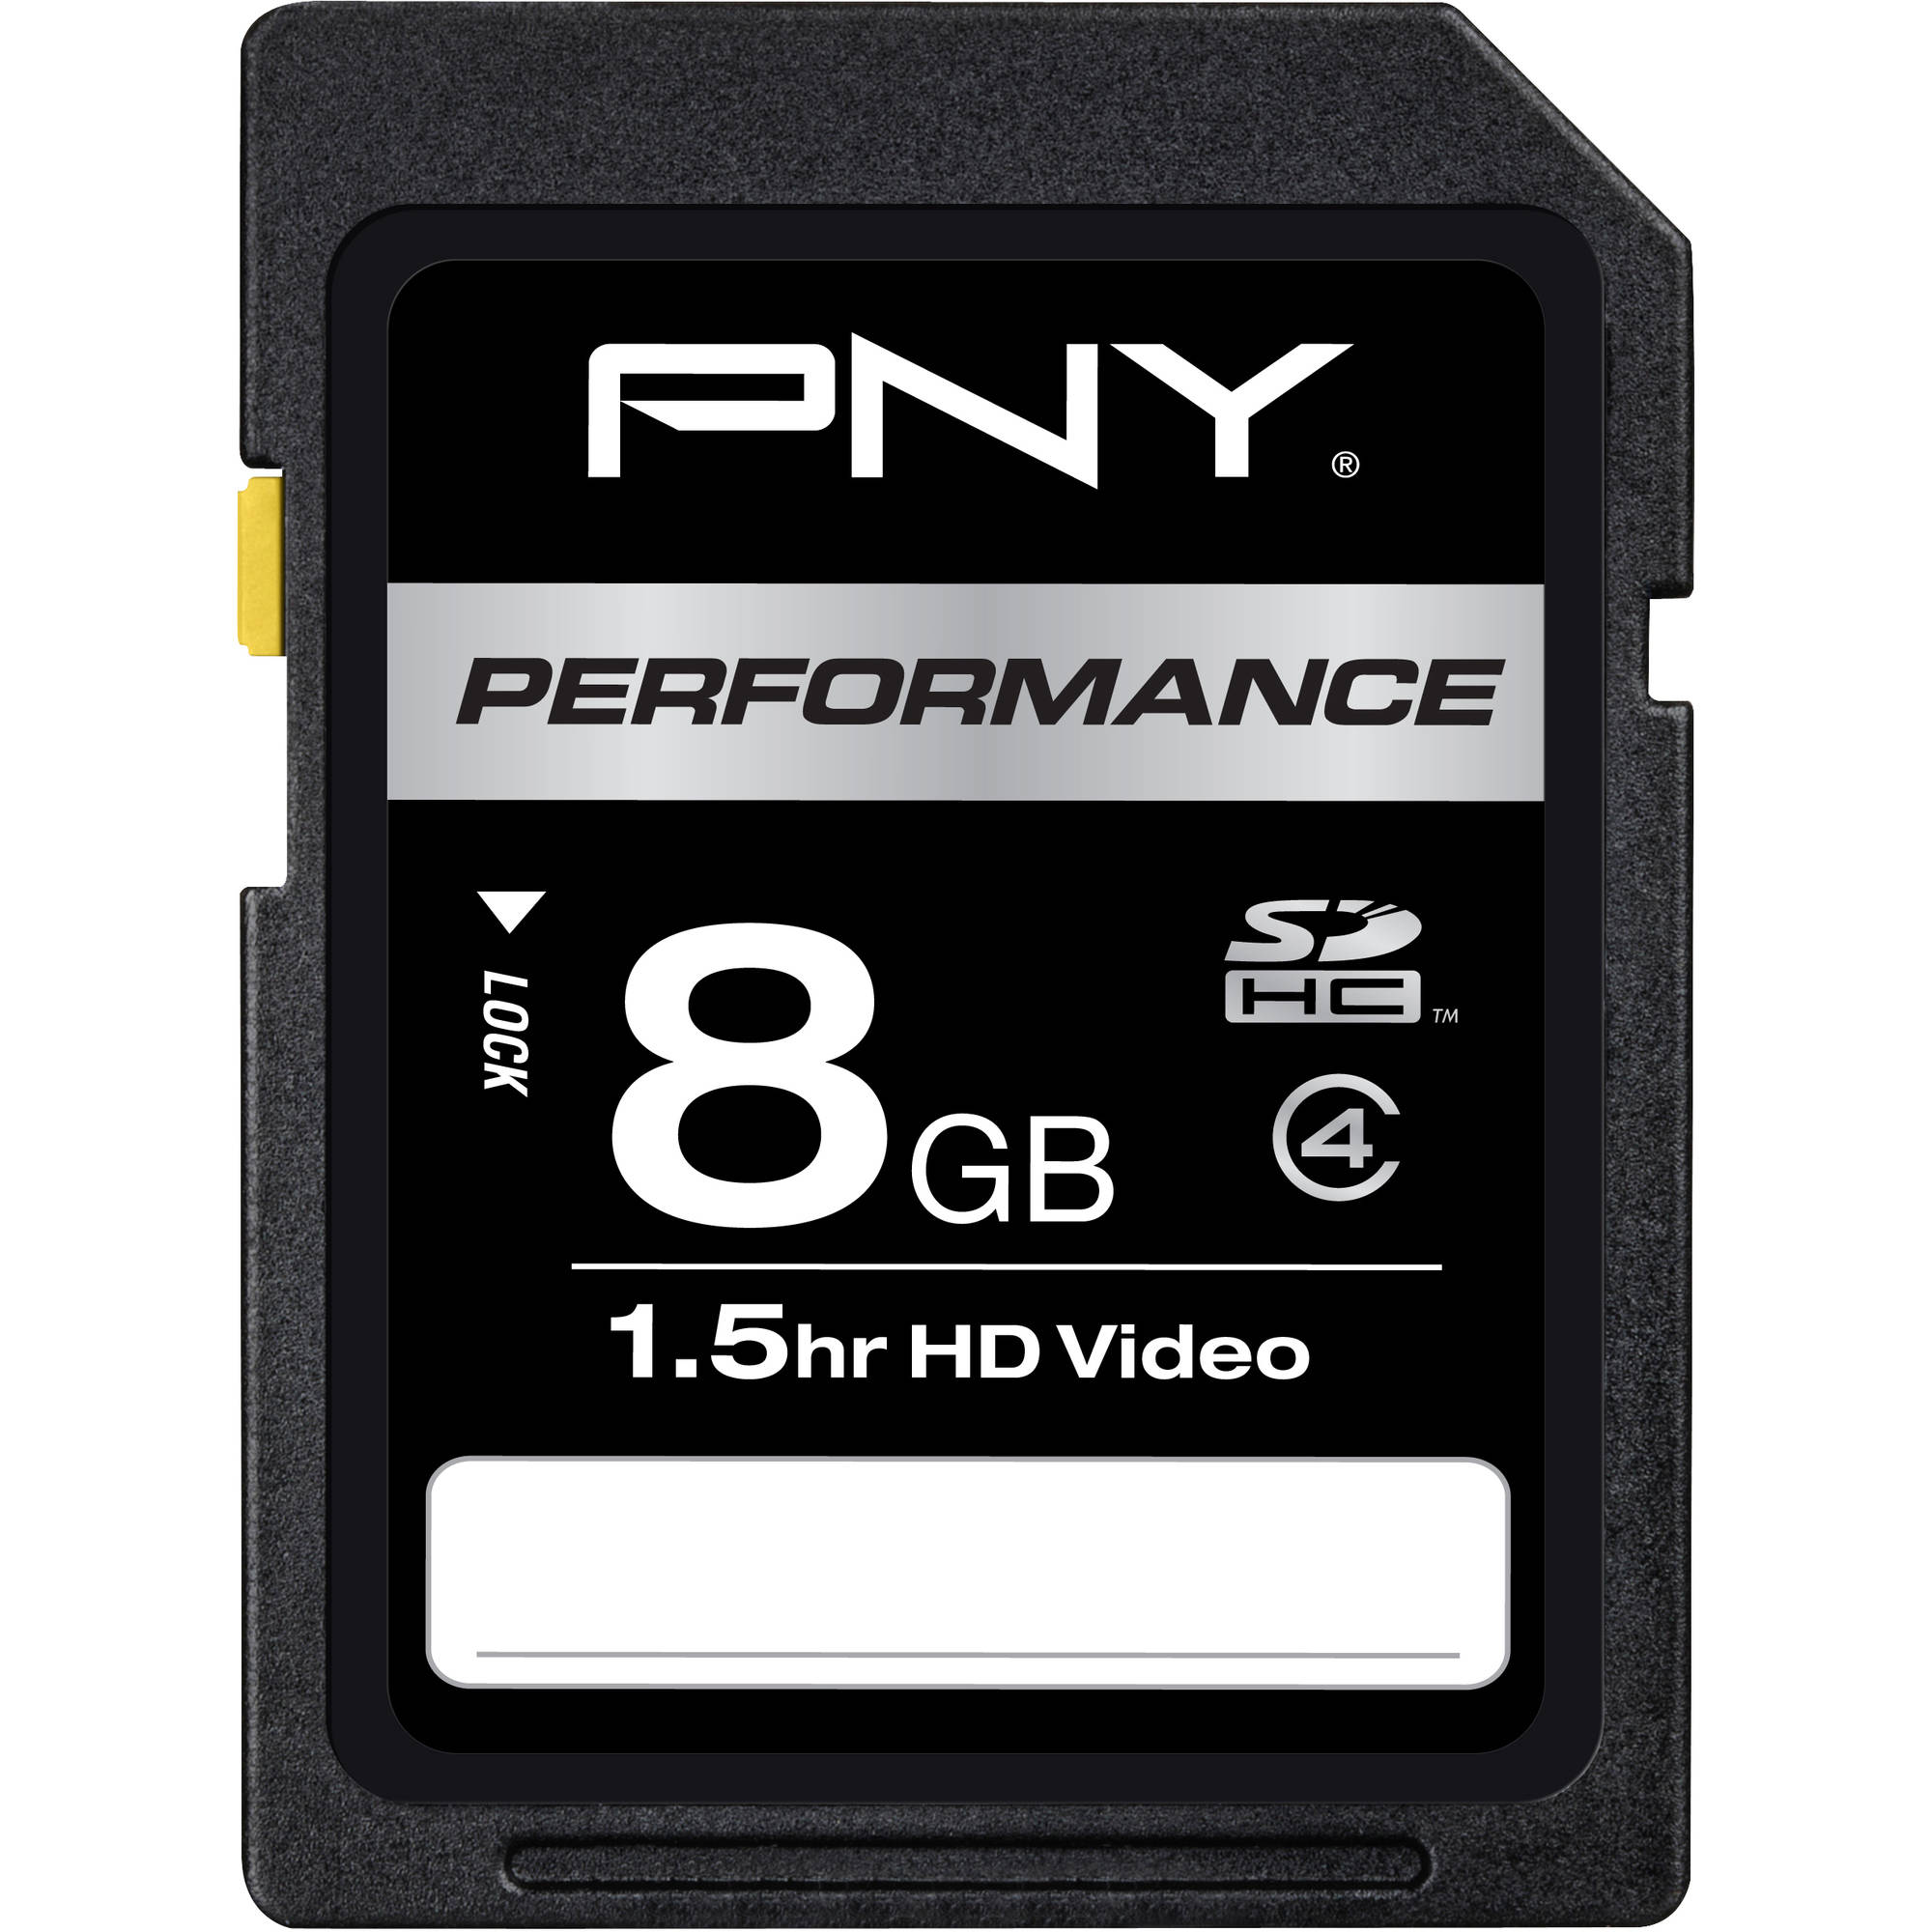 PNY 8GB SDHC Memory Card, Class 4